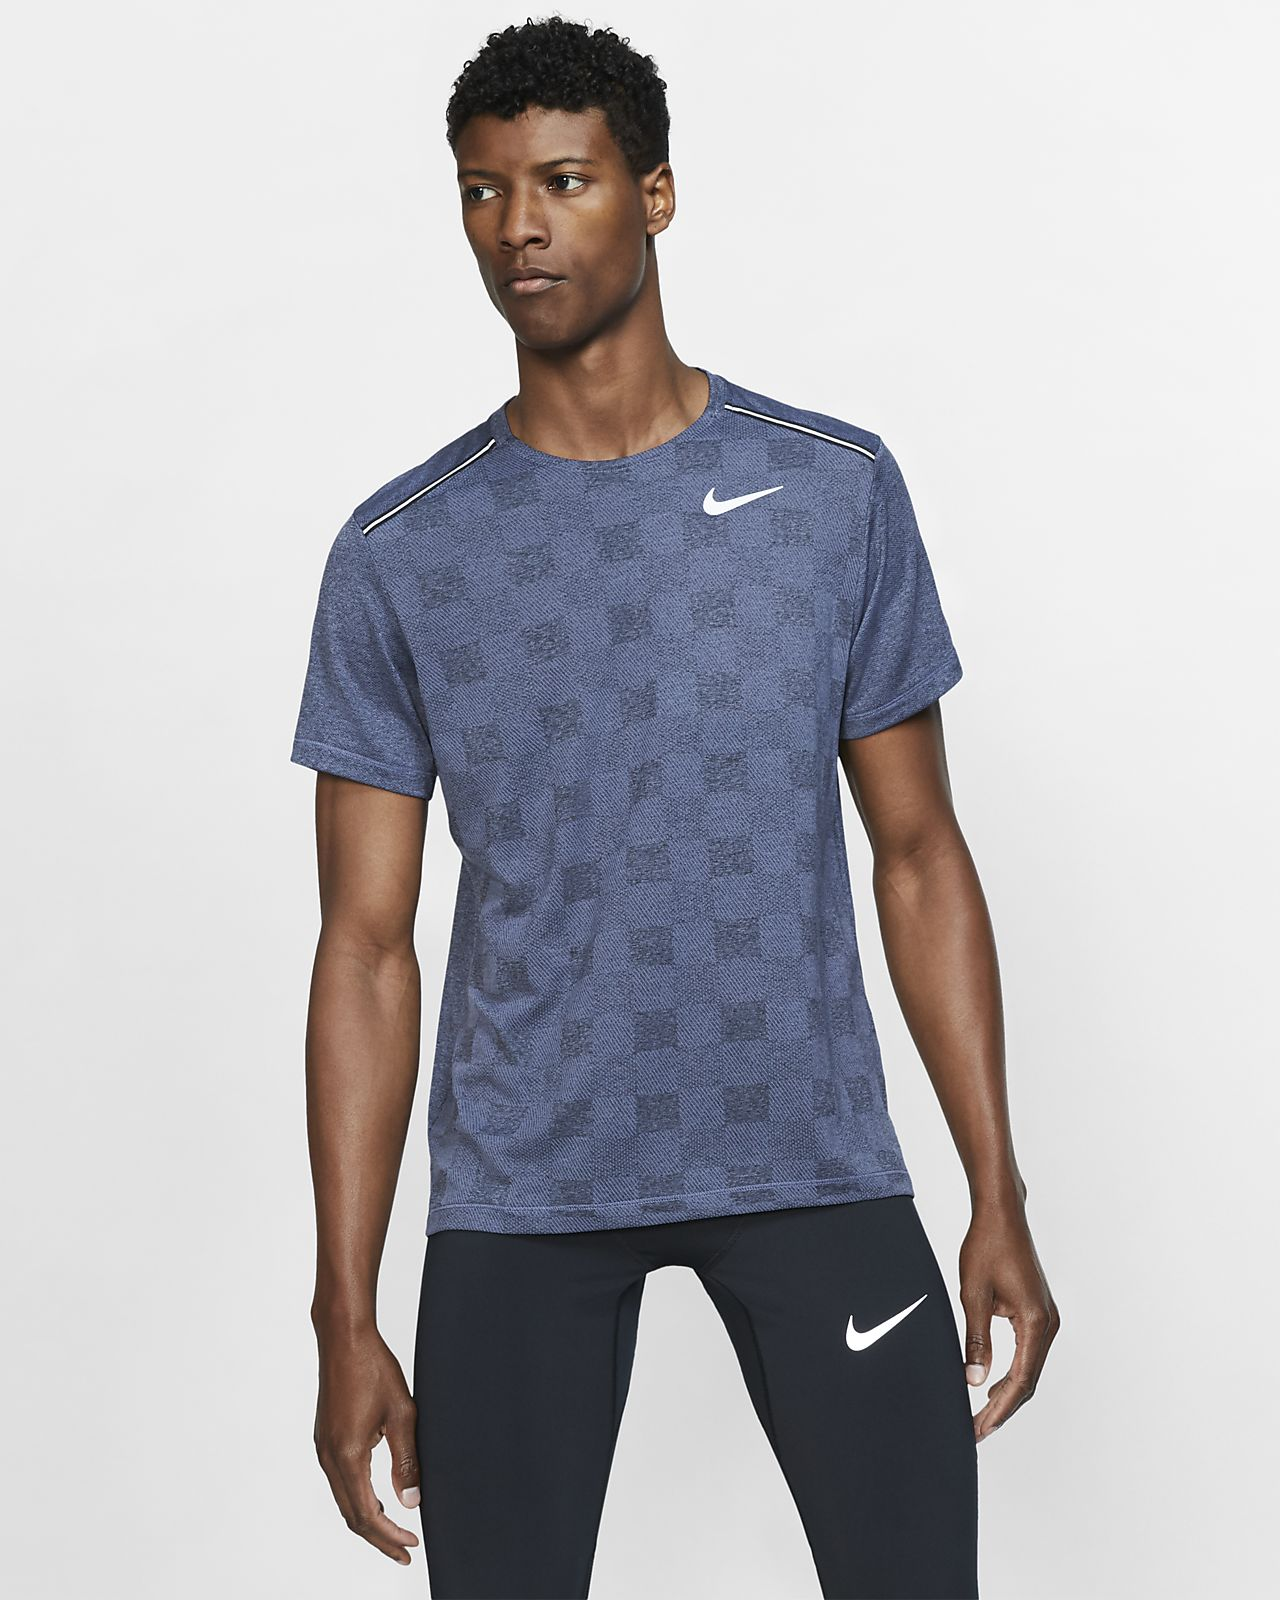 Nike Dri-FIT Miler Men's Short-Sleeve Knit Running Top